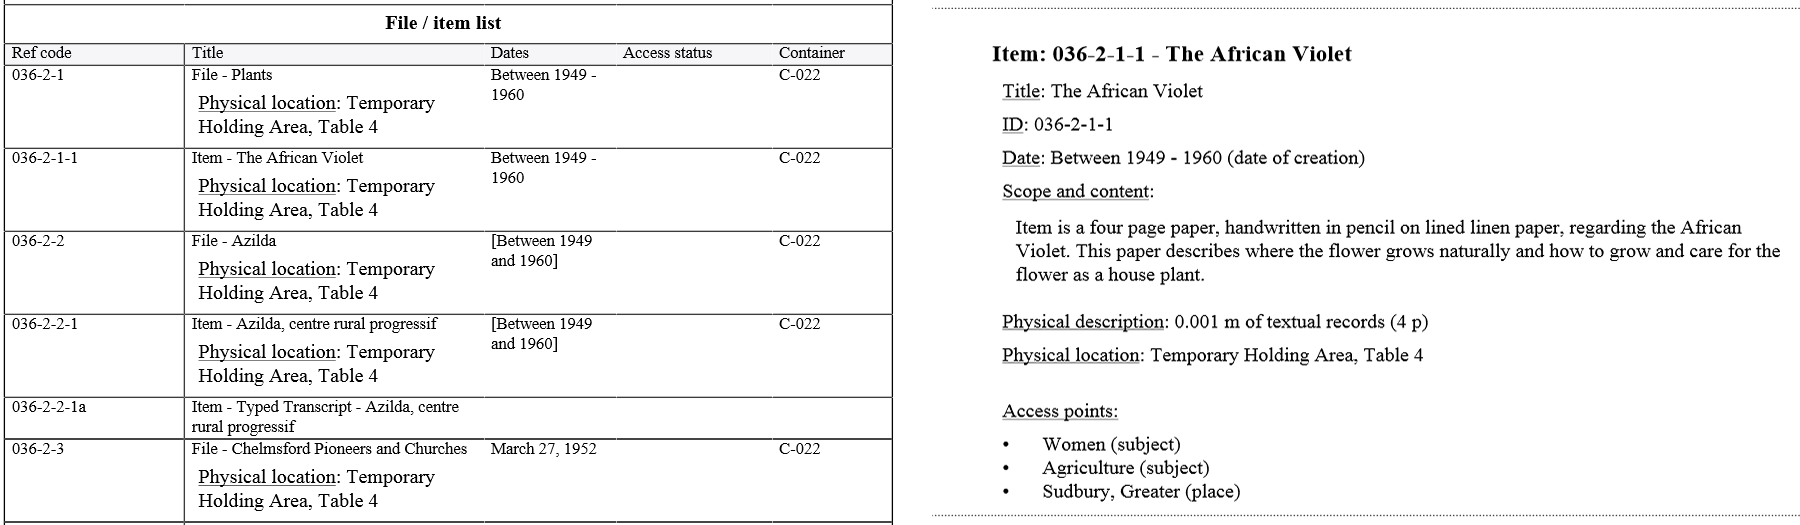 Generate, download, and print finding aids | Documentation ...